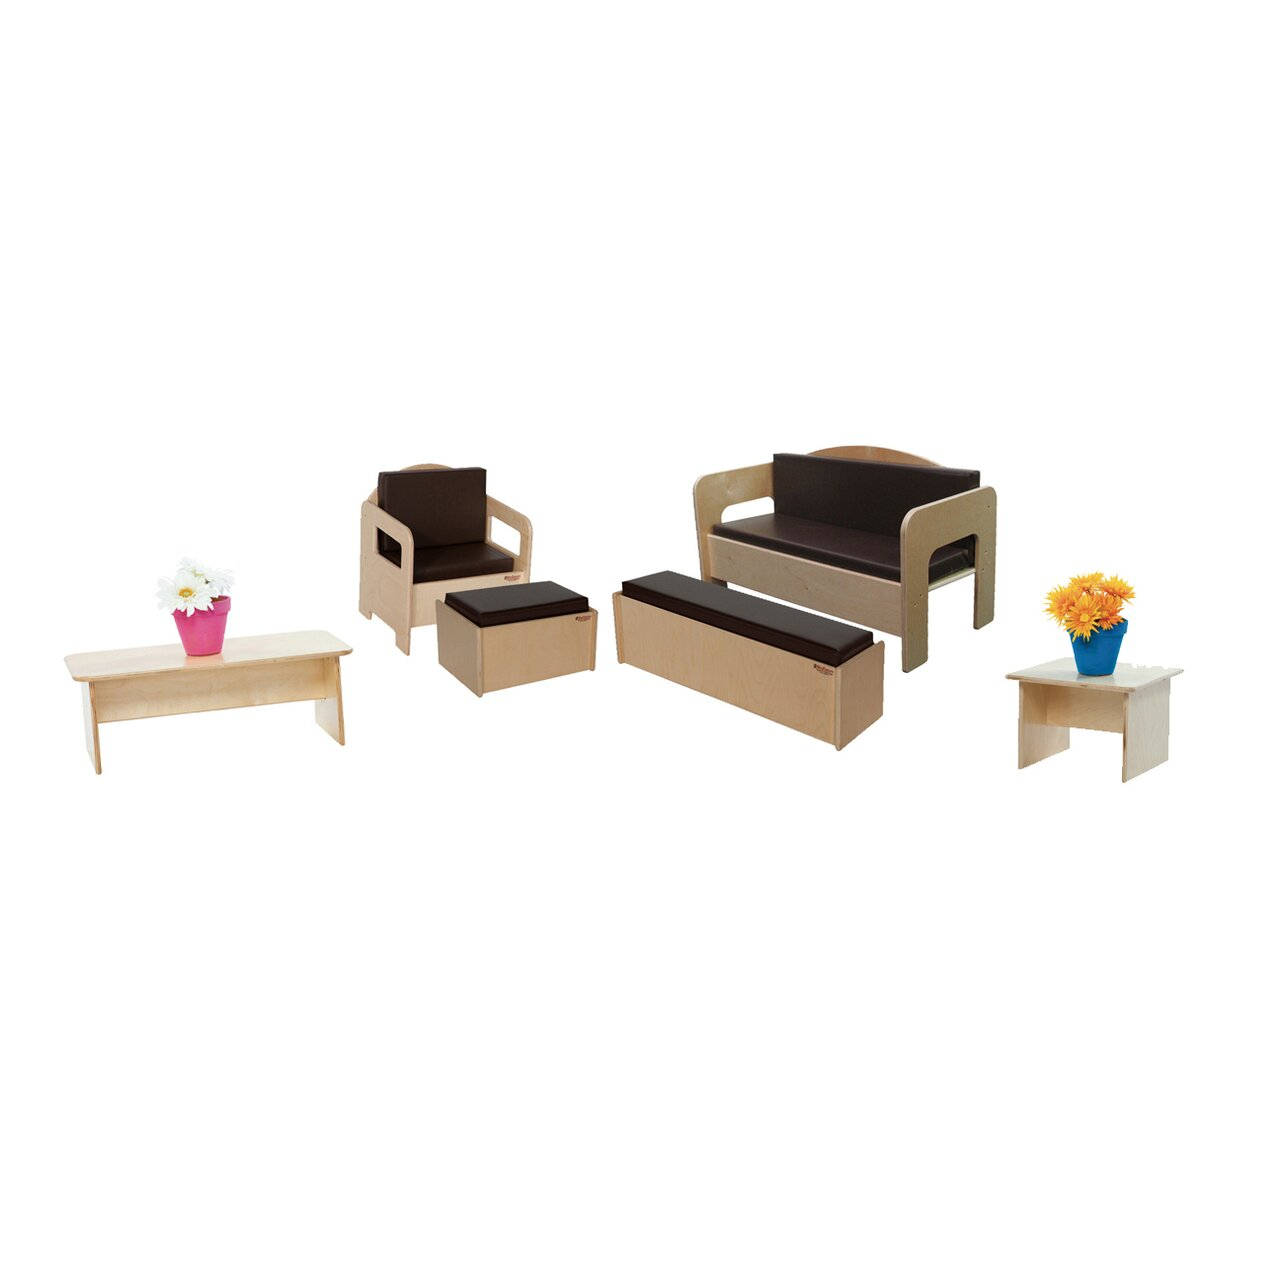 Wood Designs 6 Piece Children's Furniture Set Wayfair Supply. Full resolution‎  photo, nominally Width 1280 Height 1280 pixels, photo with #115F91.